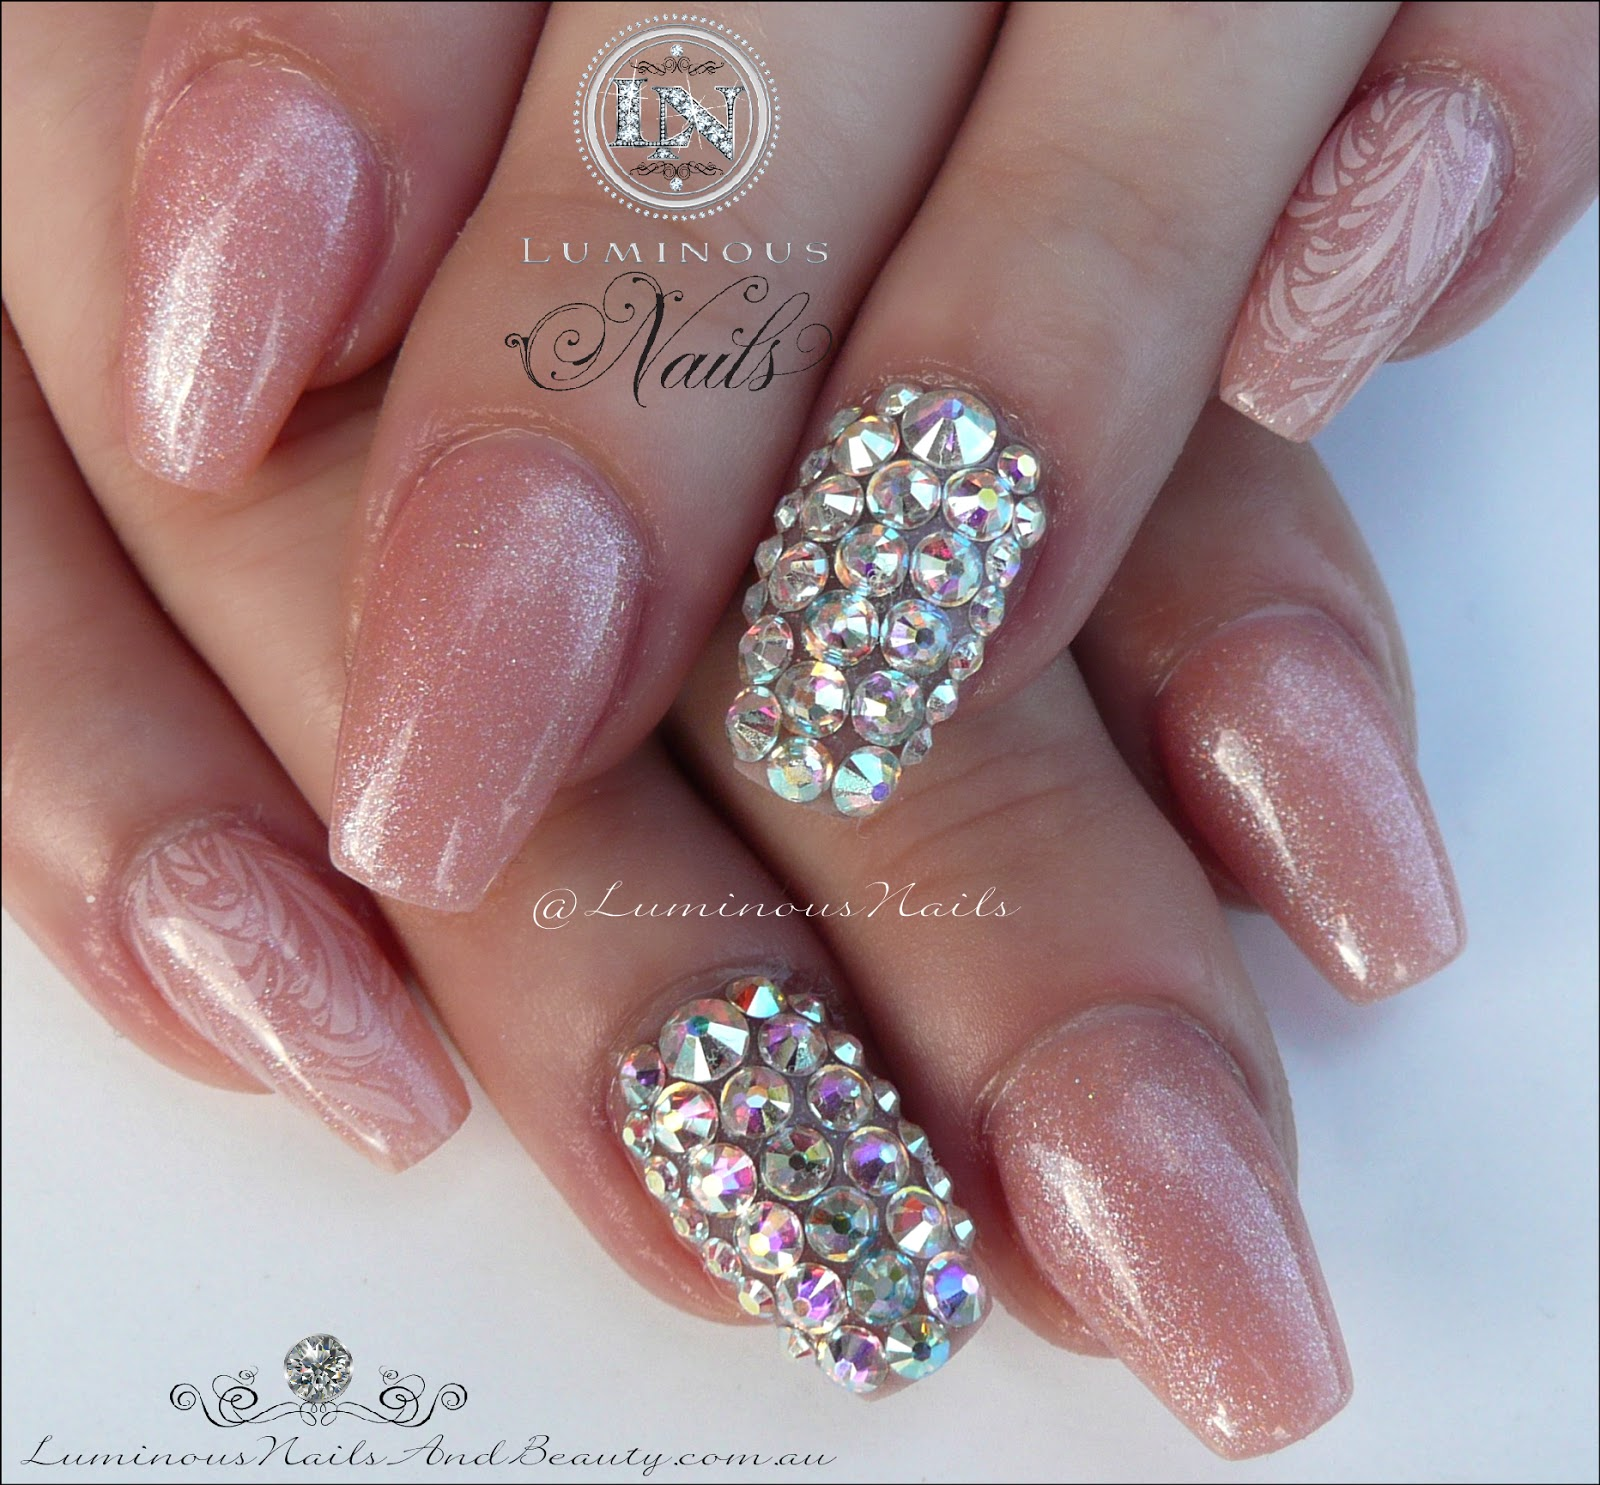 Luminous Nails: Shimmery Nude Acrylic Nails with Swarovski Crystals